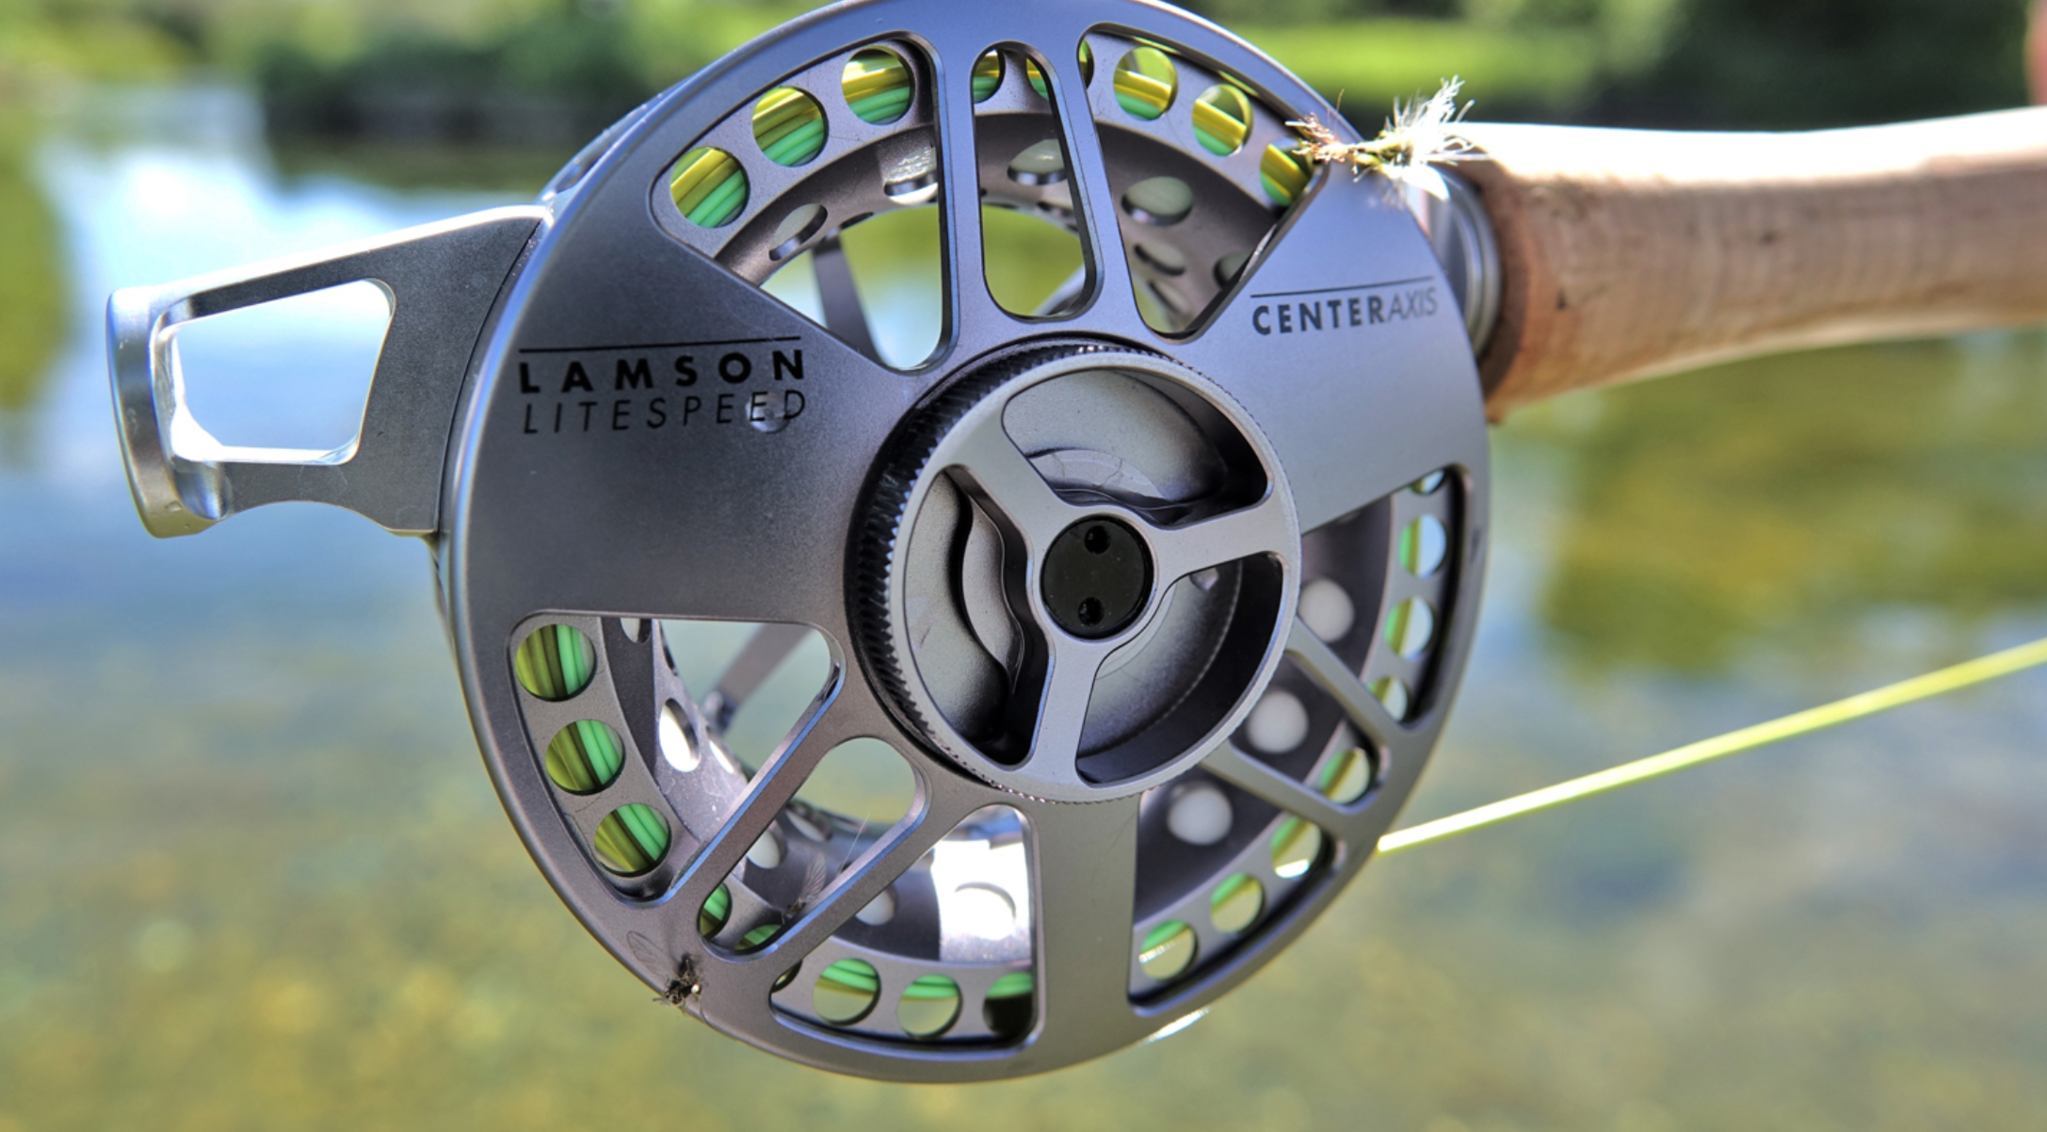 Lamson Center Axis Outfit